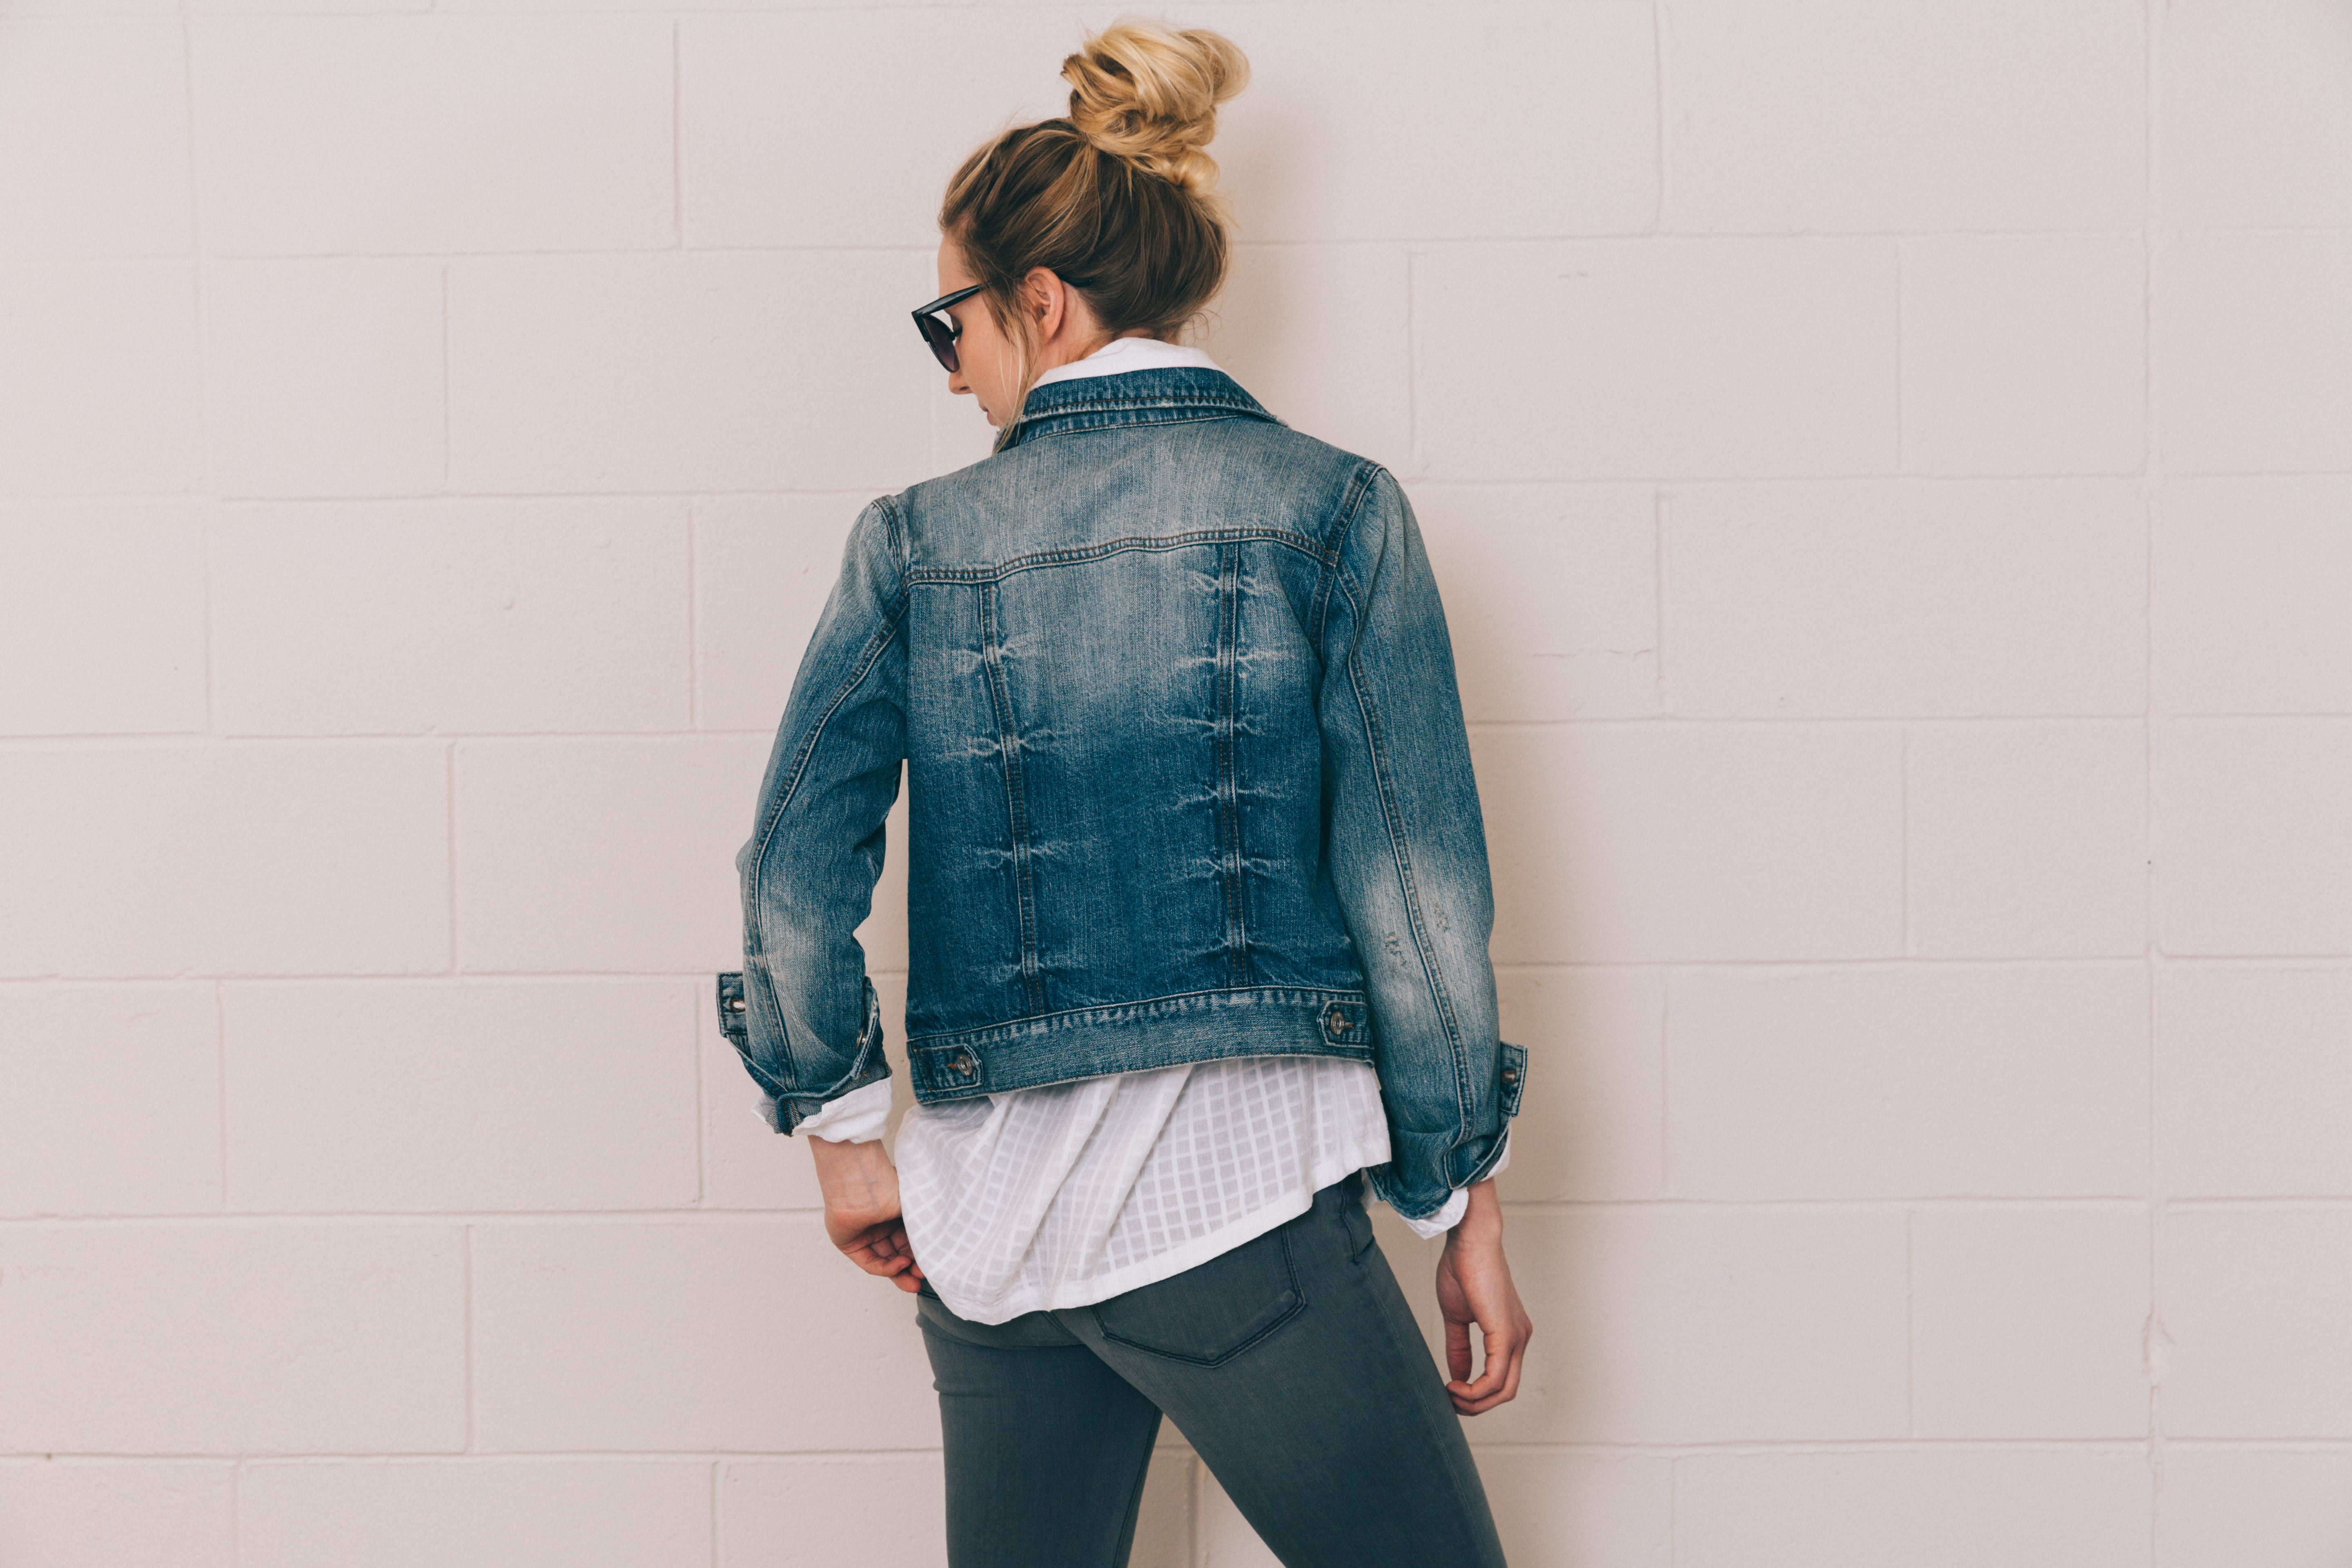 Girl in a white button-down, grey jeans, and a denim jacket.